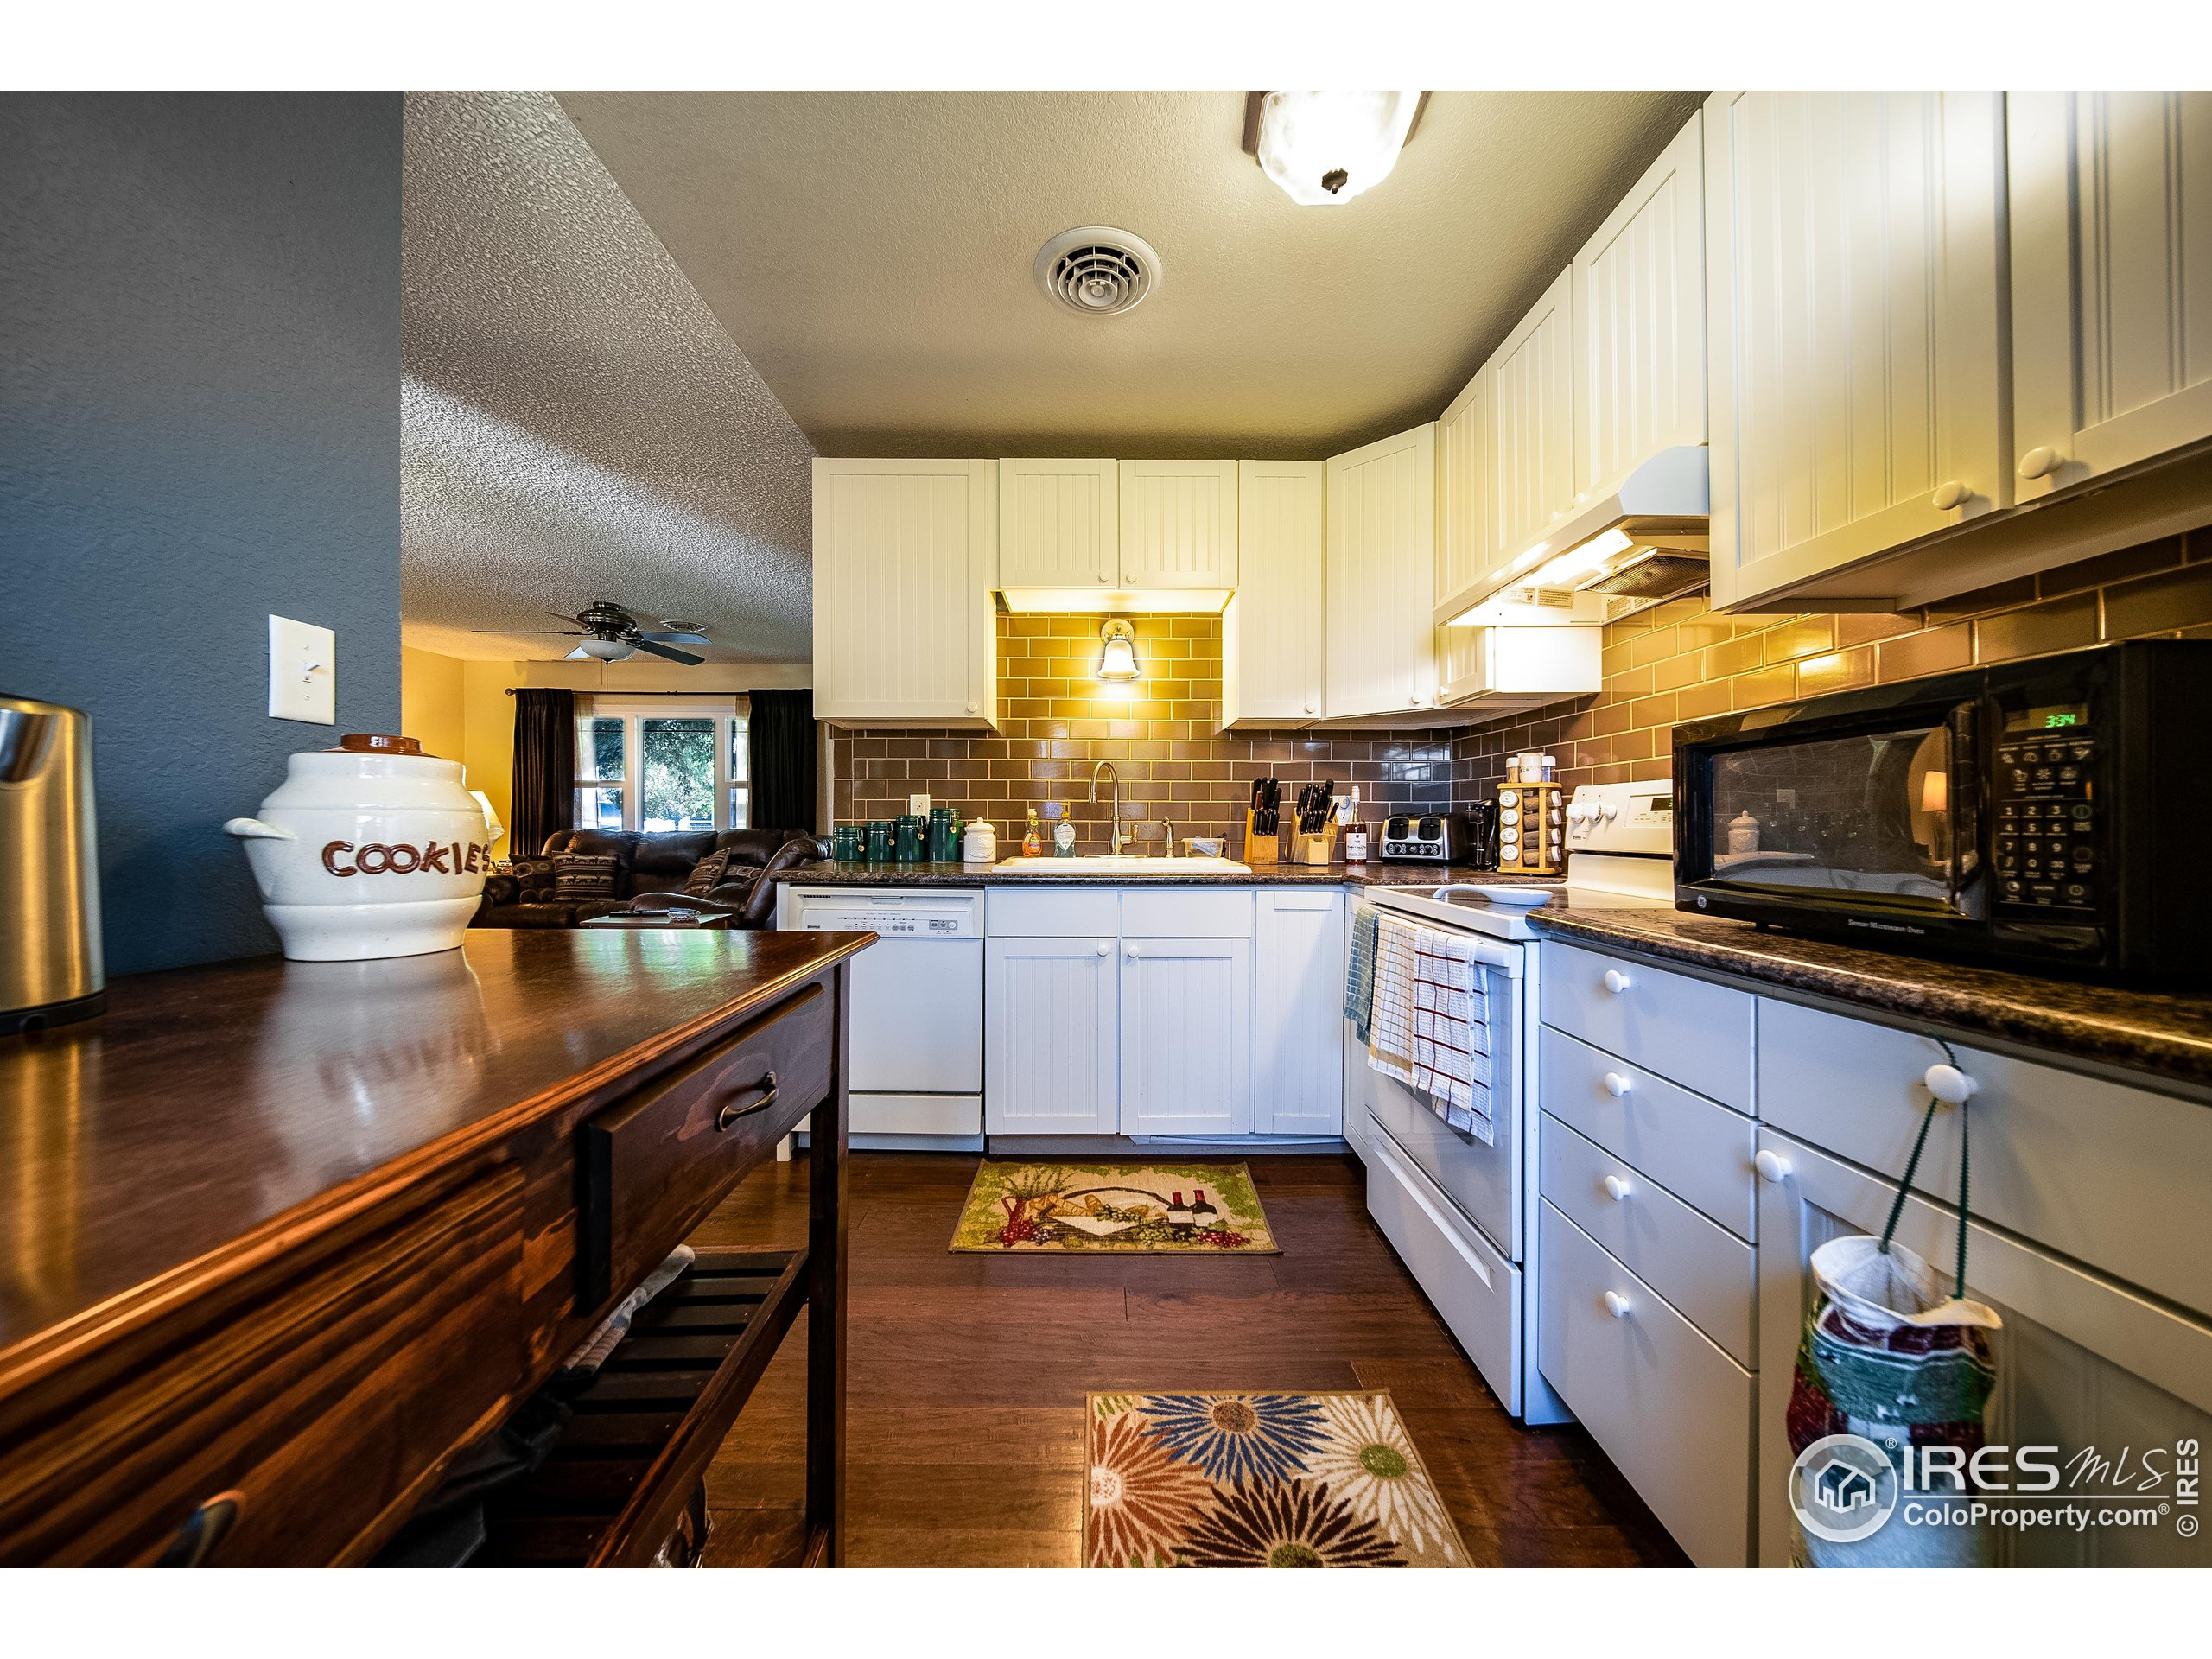 The flooring, counter tops, and subway tile backsplash, are the perfect contrast to shaker style cabinets.